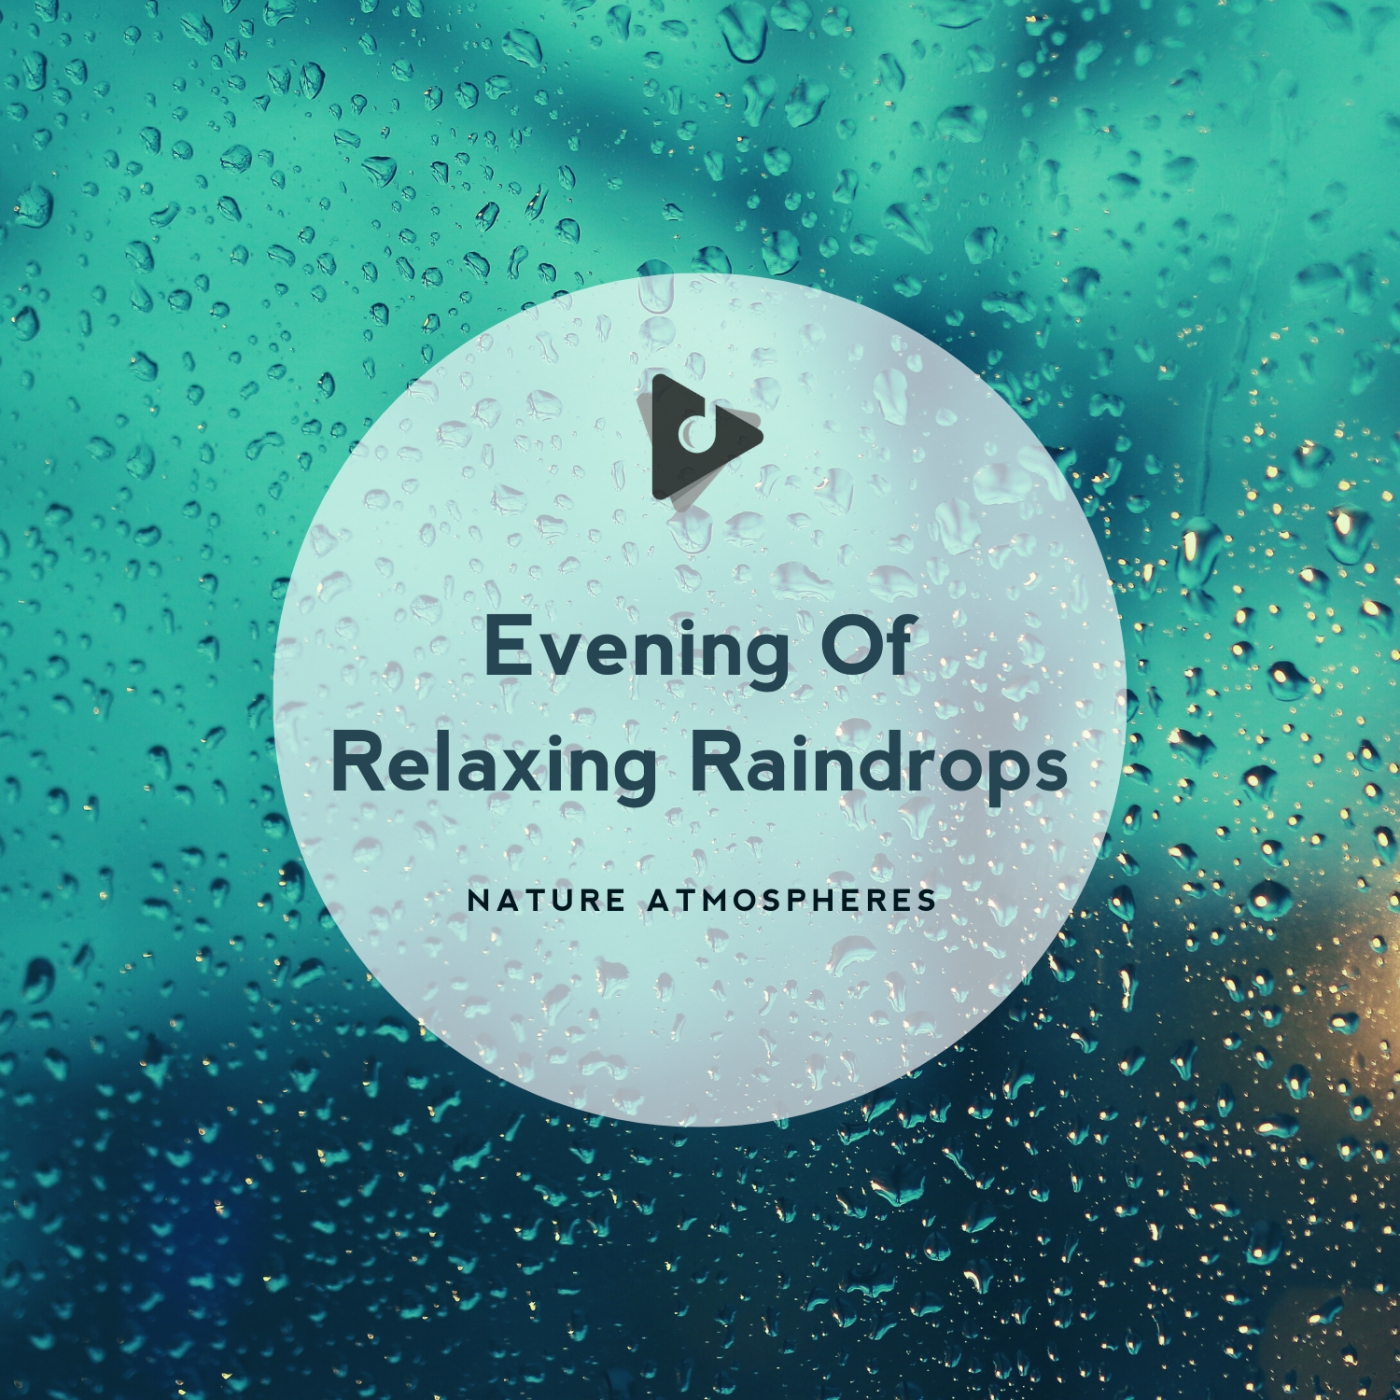 Evening Of Relaxing Raindrops